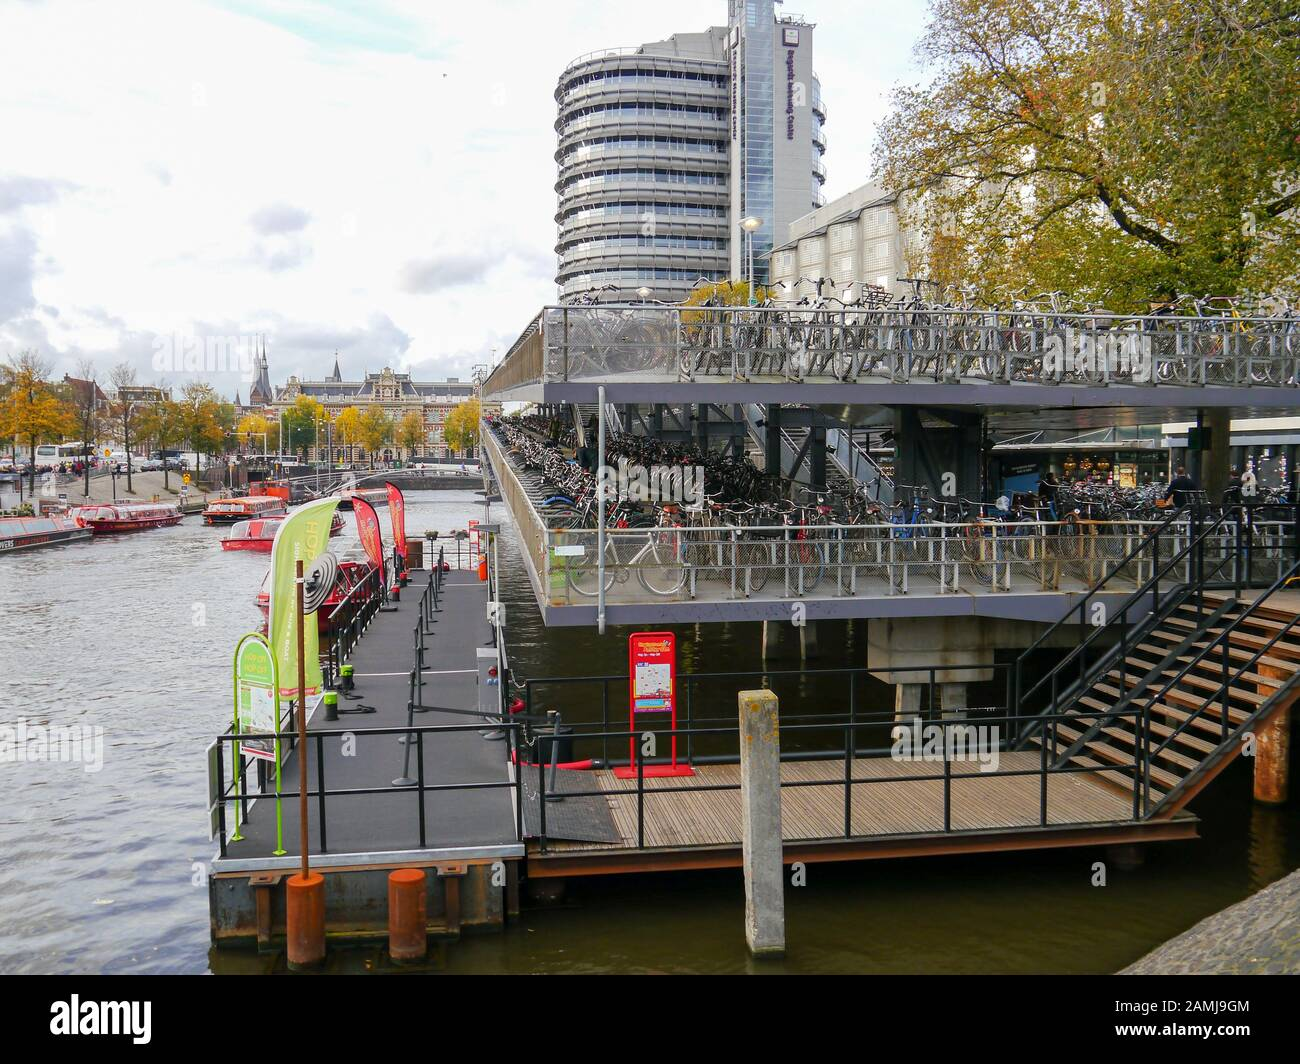 A cycle park in Amsterdam, Netherlands Stock Photo